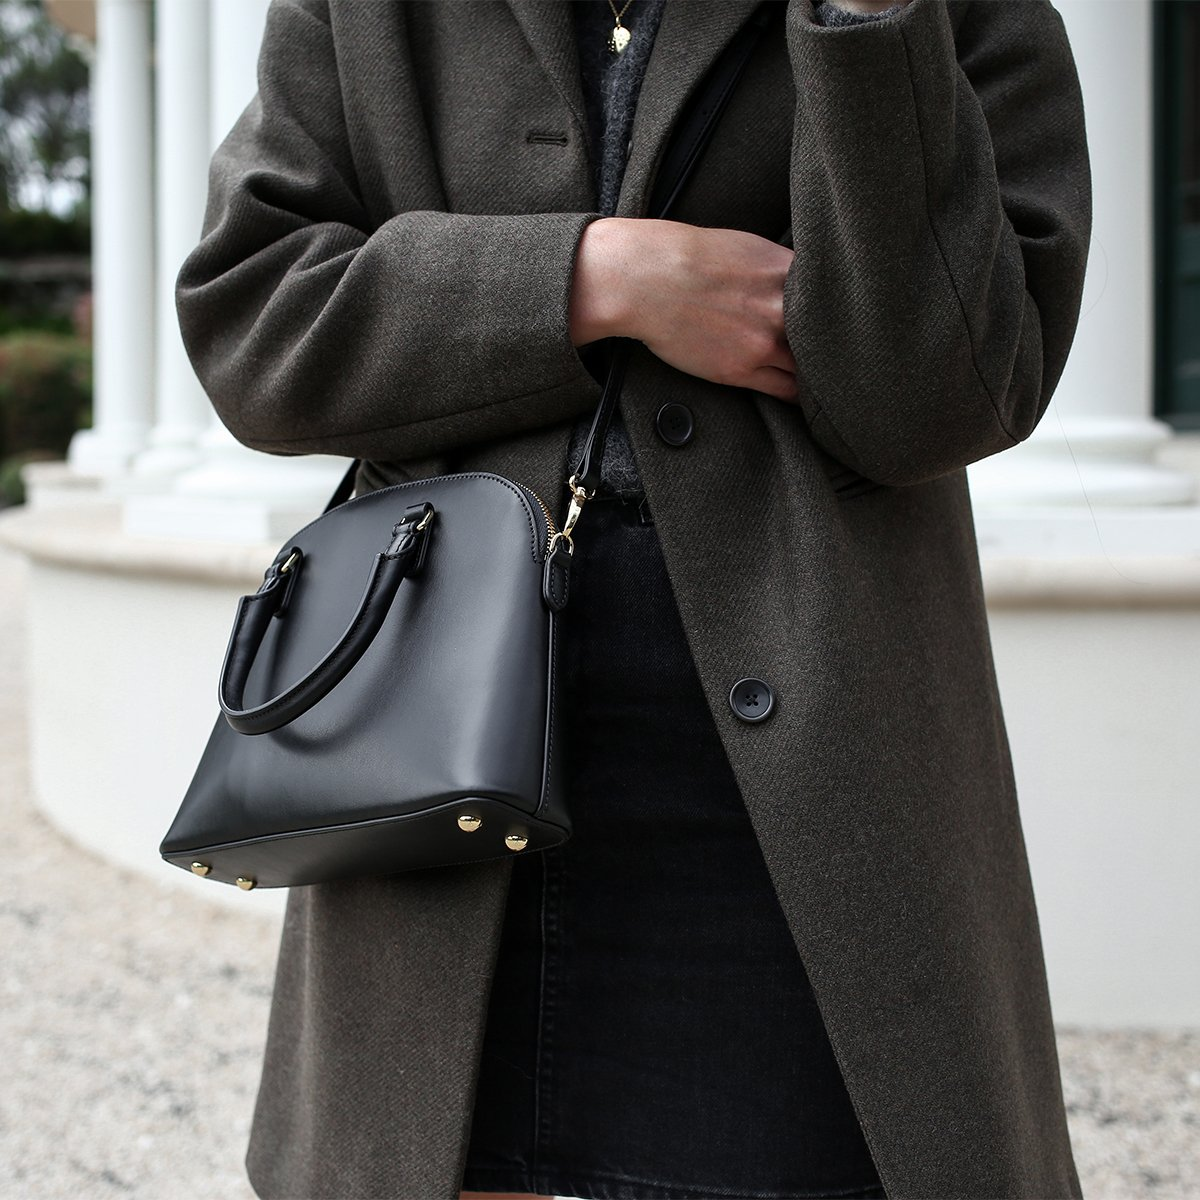 Some importance of handbags for women